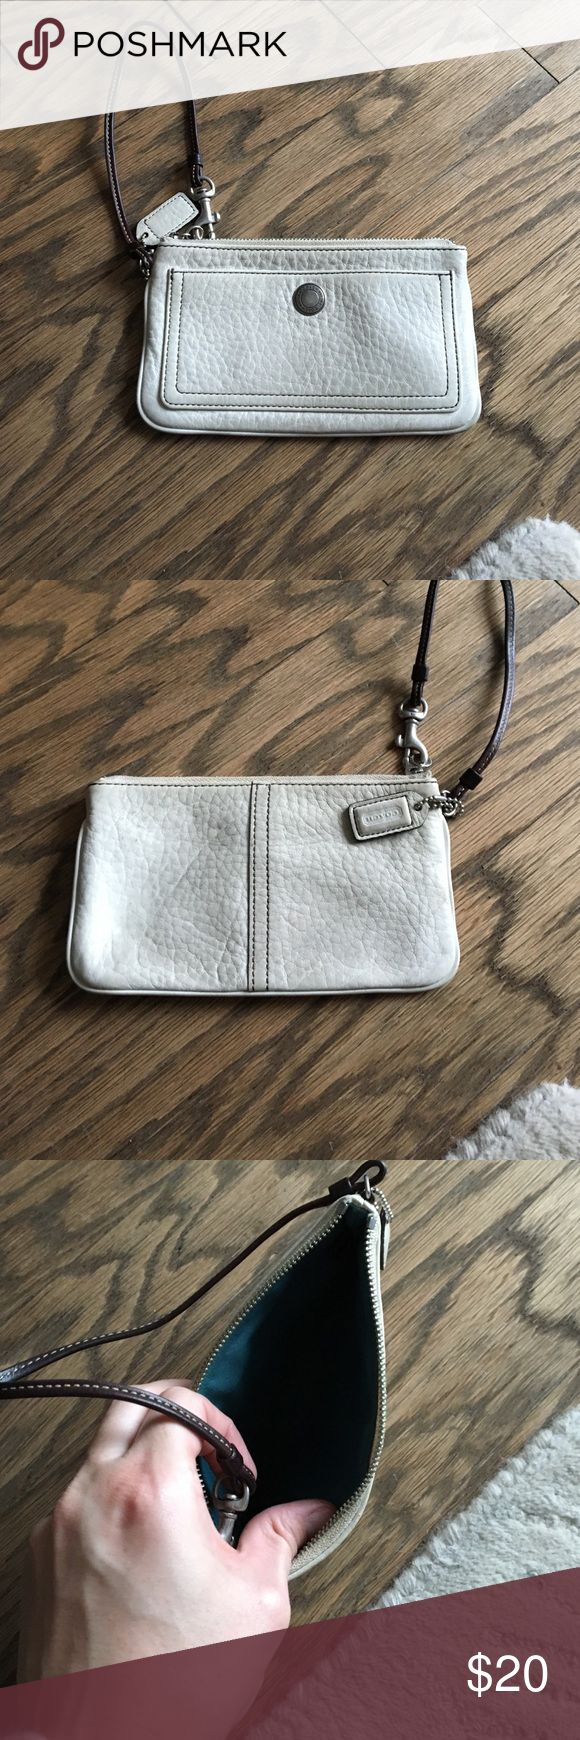 Coach leather wristlet Ivory pebble leather. Business Envelope length size. Exterior pouch. Leather looks worn and slightly discolored Coach Accessories